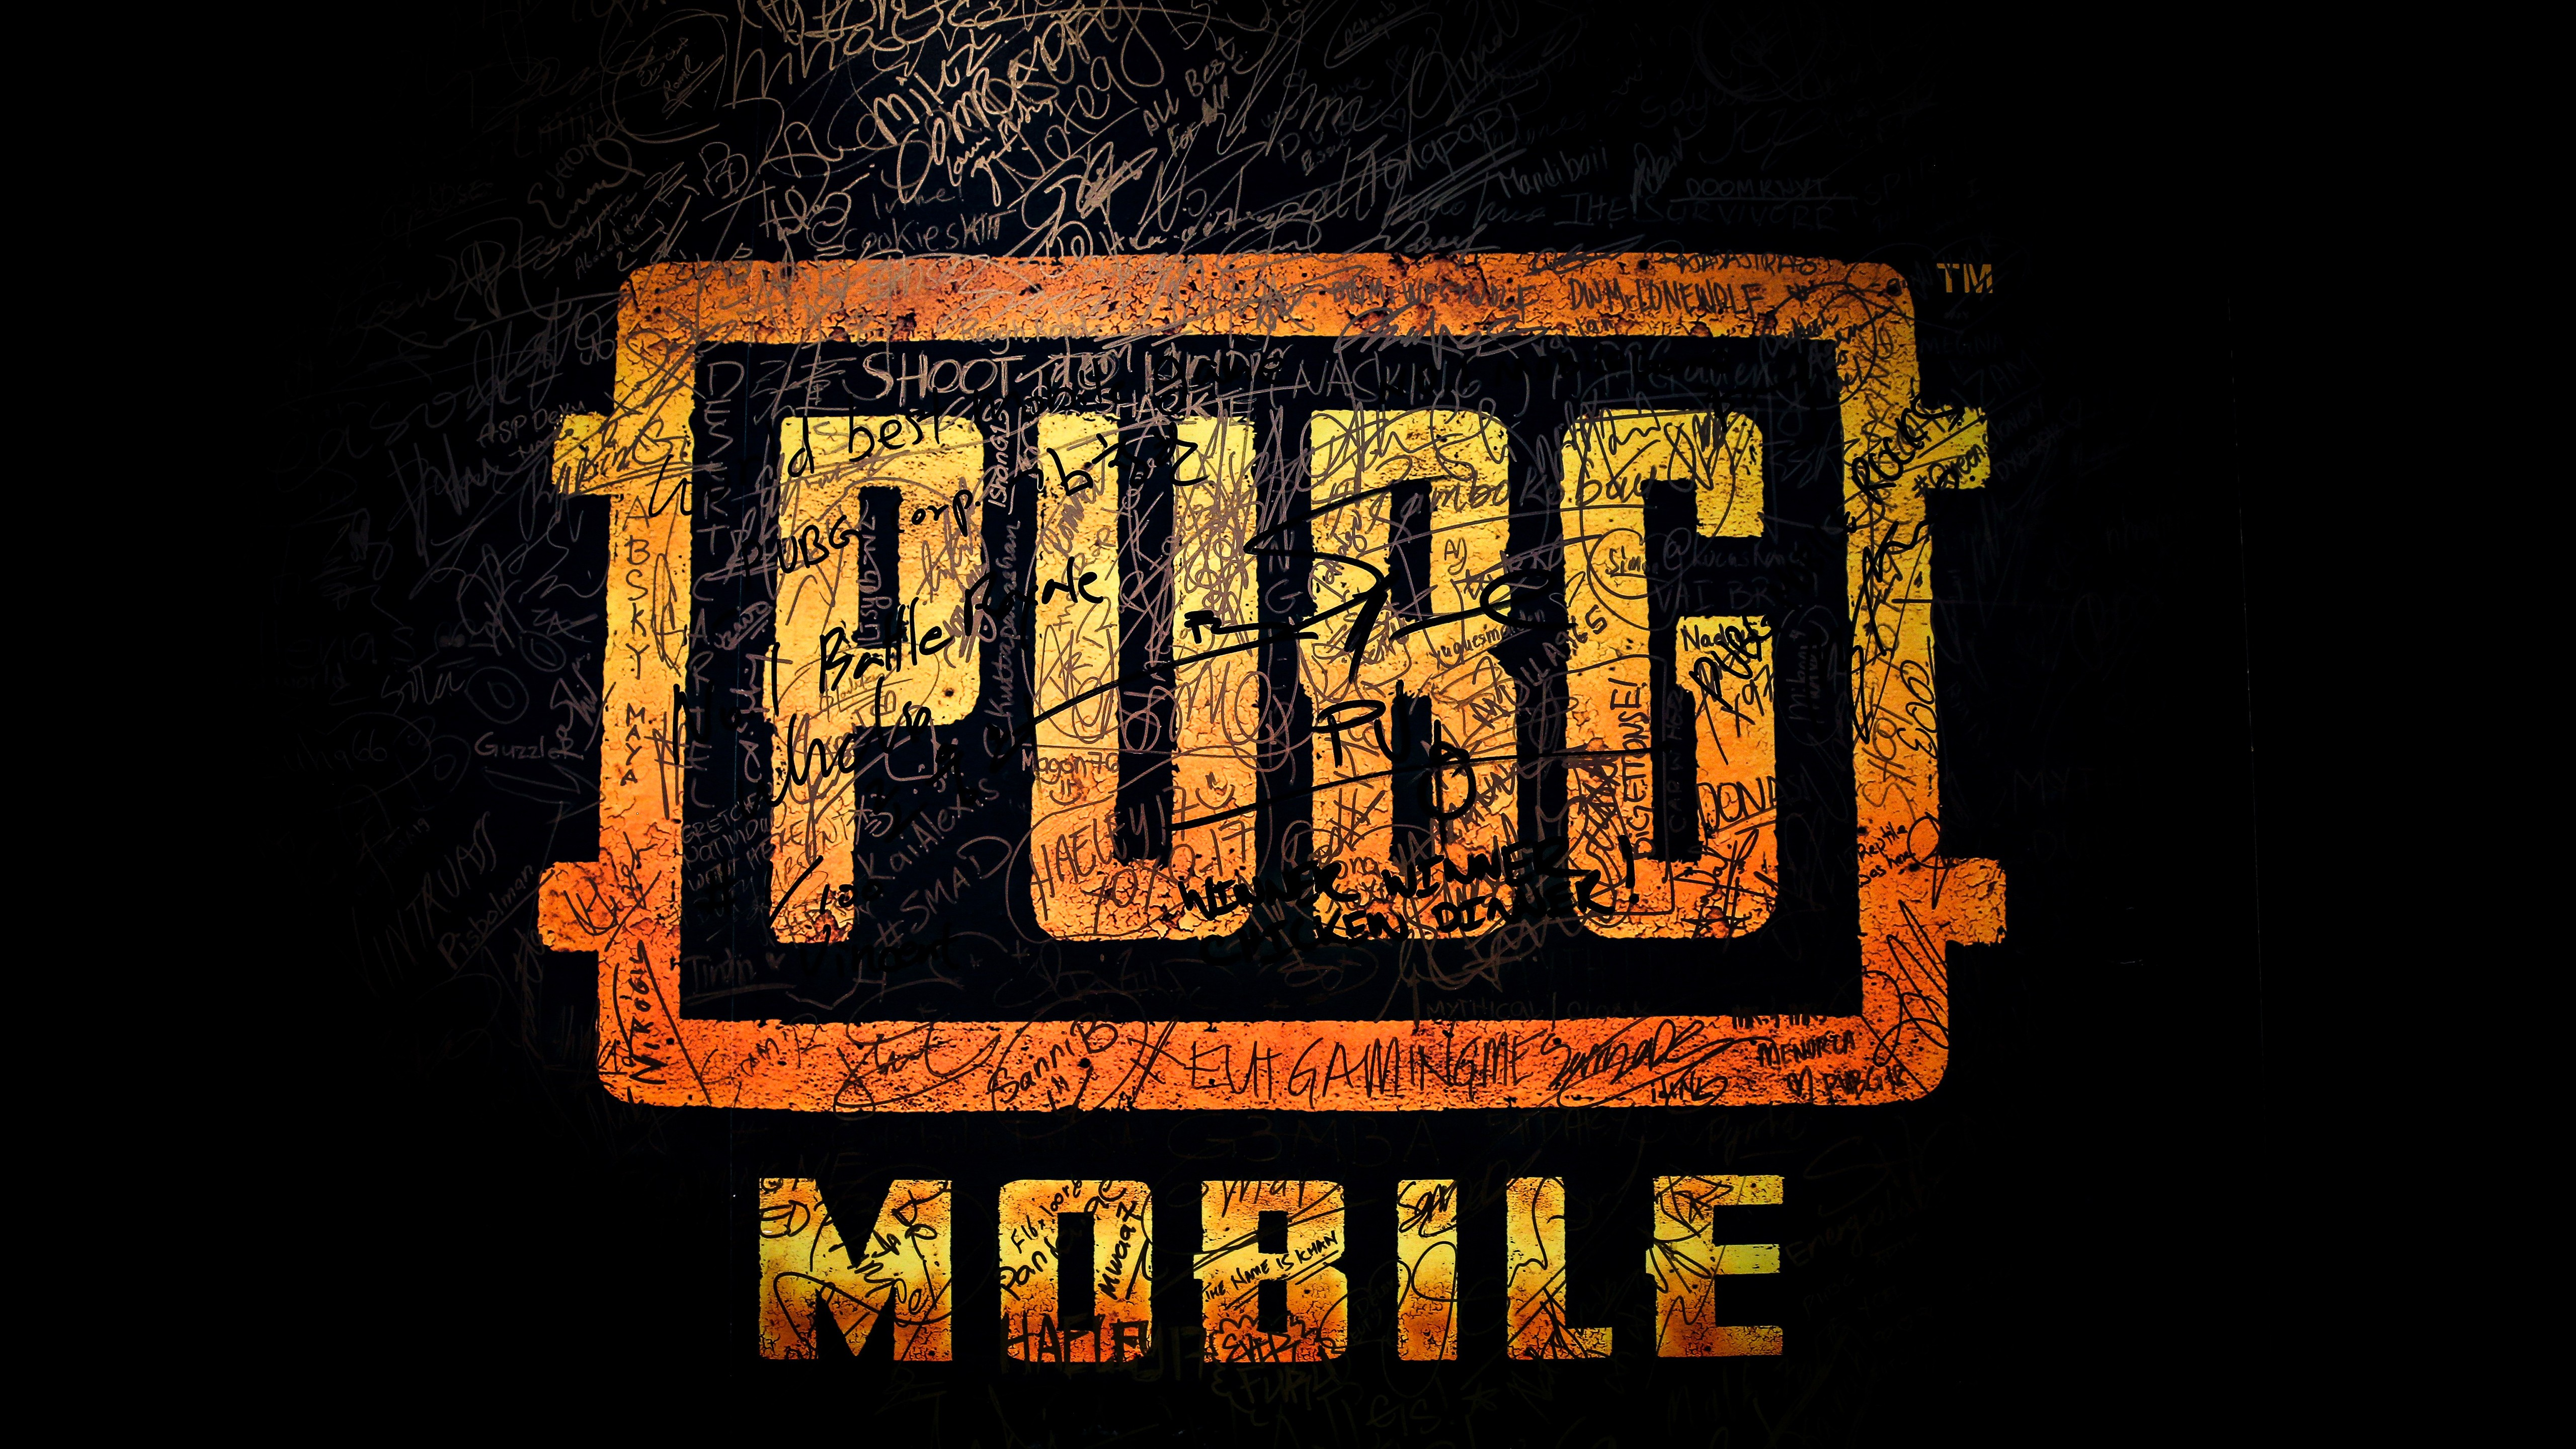 Wallpaper Pubg Mobile Hd For Iphone: PUBG Mobile 5K Wallpapers